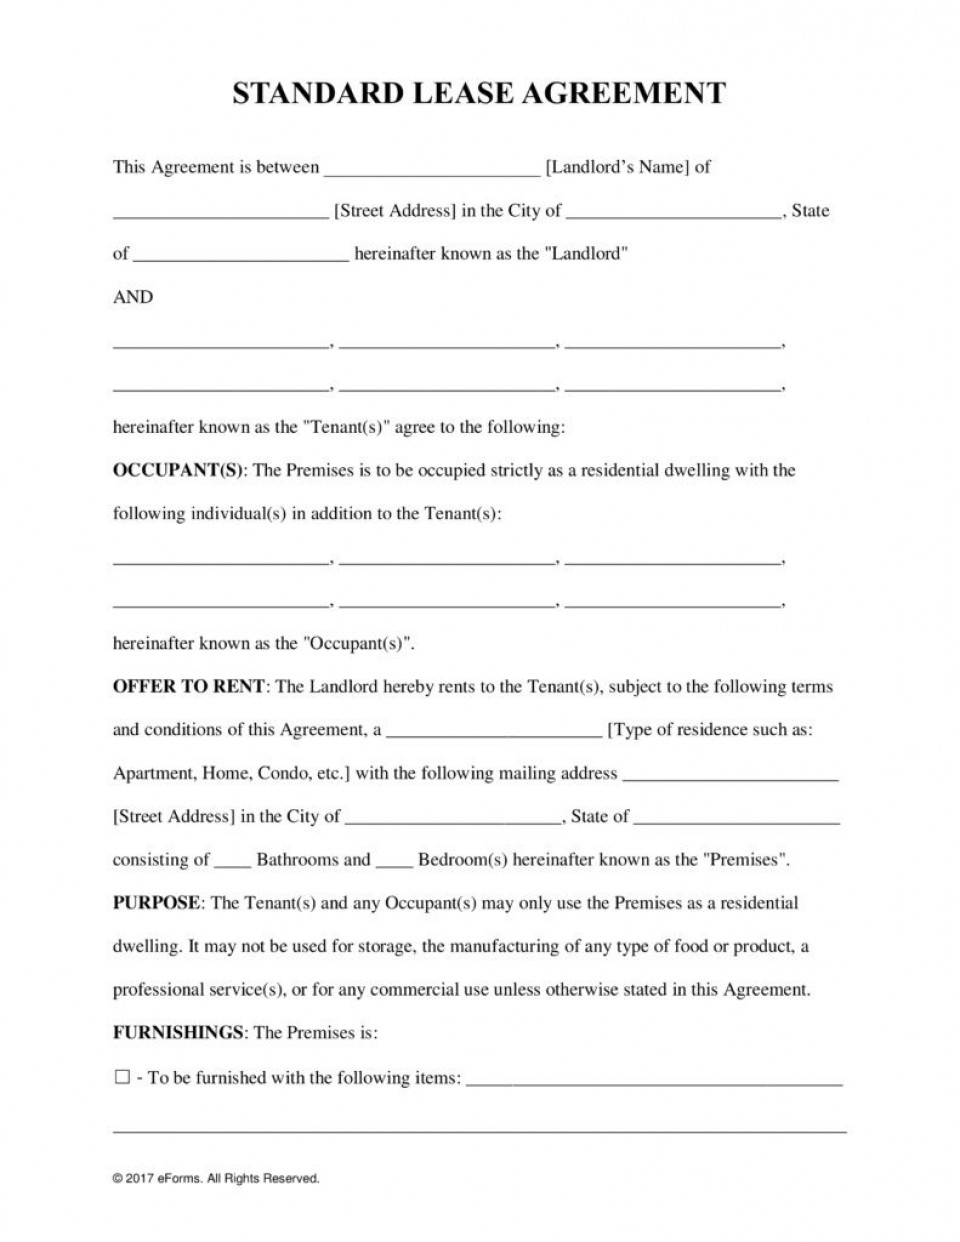 001 Singular Free Lease Agreement Template Word Photo  Commercial Residential Rental South Africa960